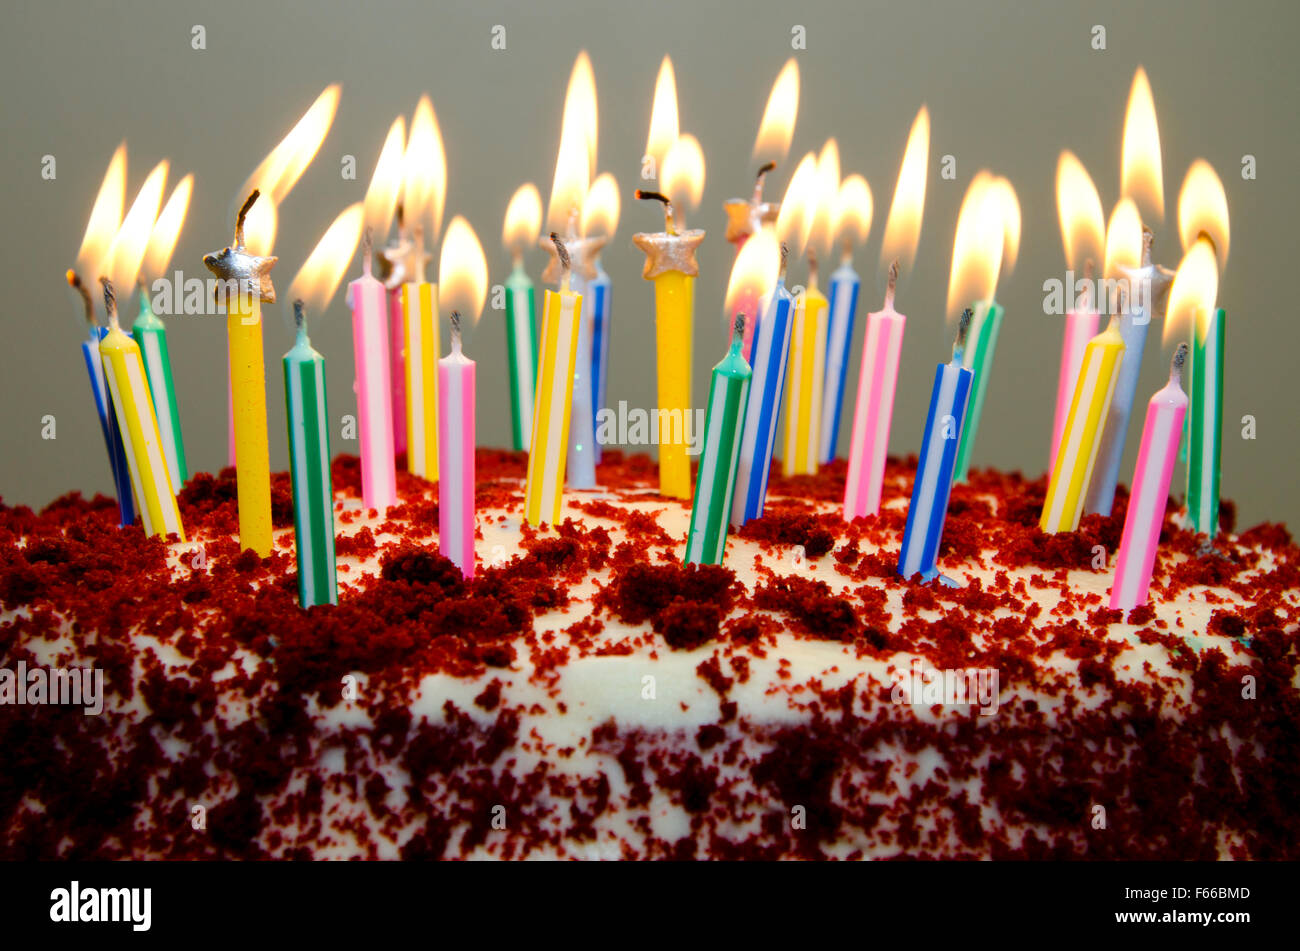 Red Velvet Birthday Cake With Candles